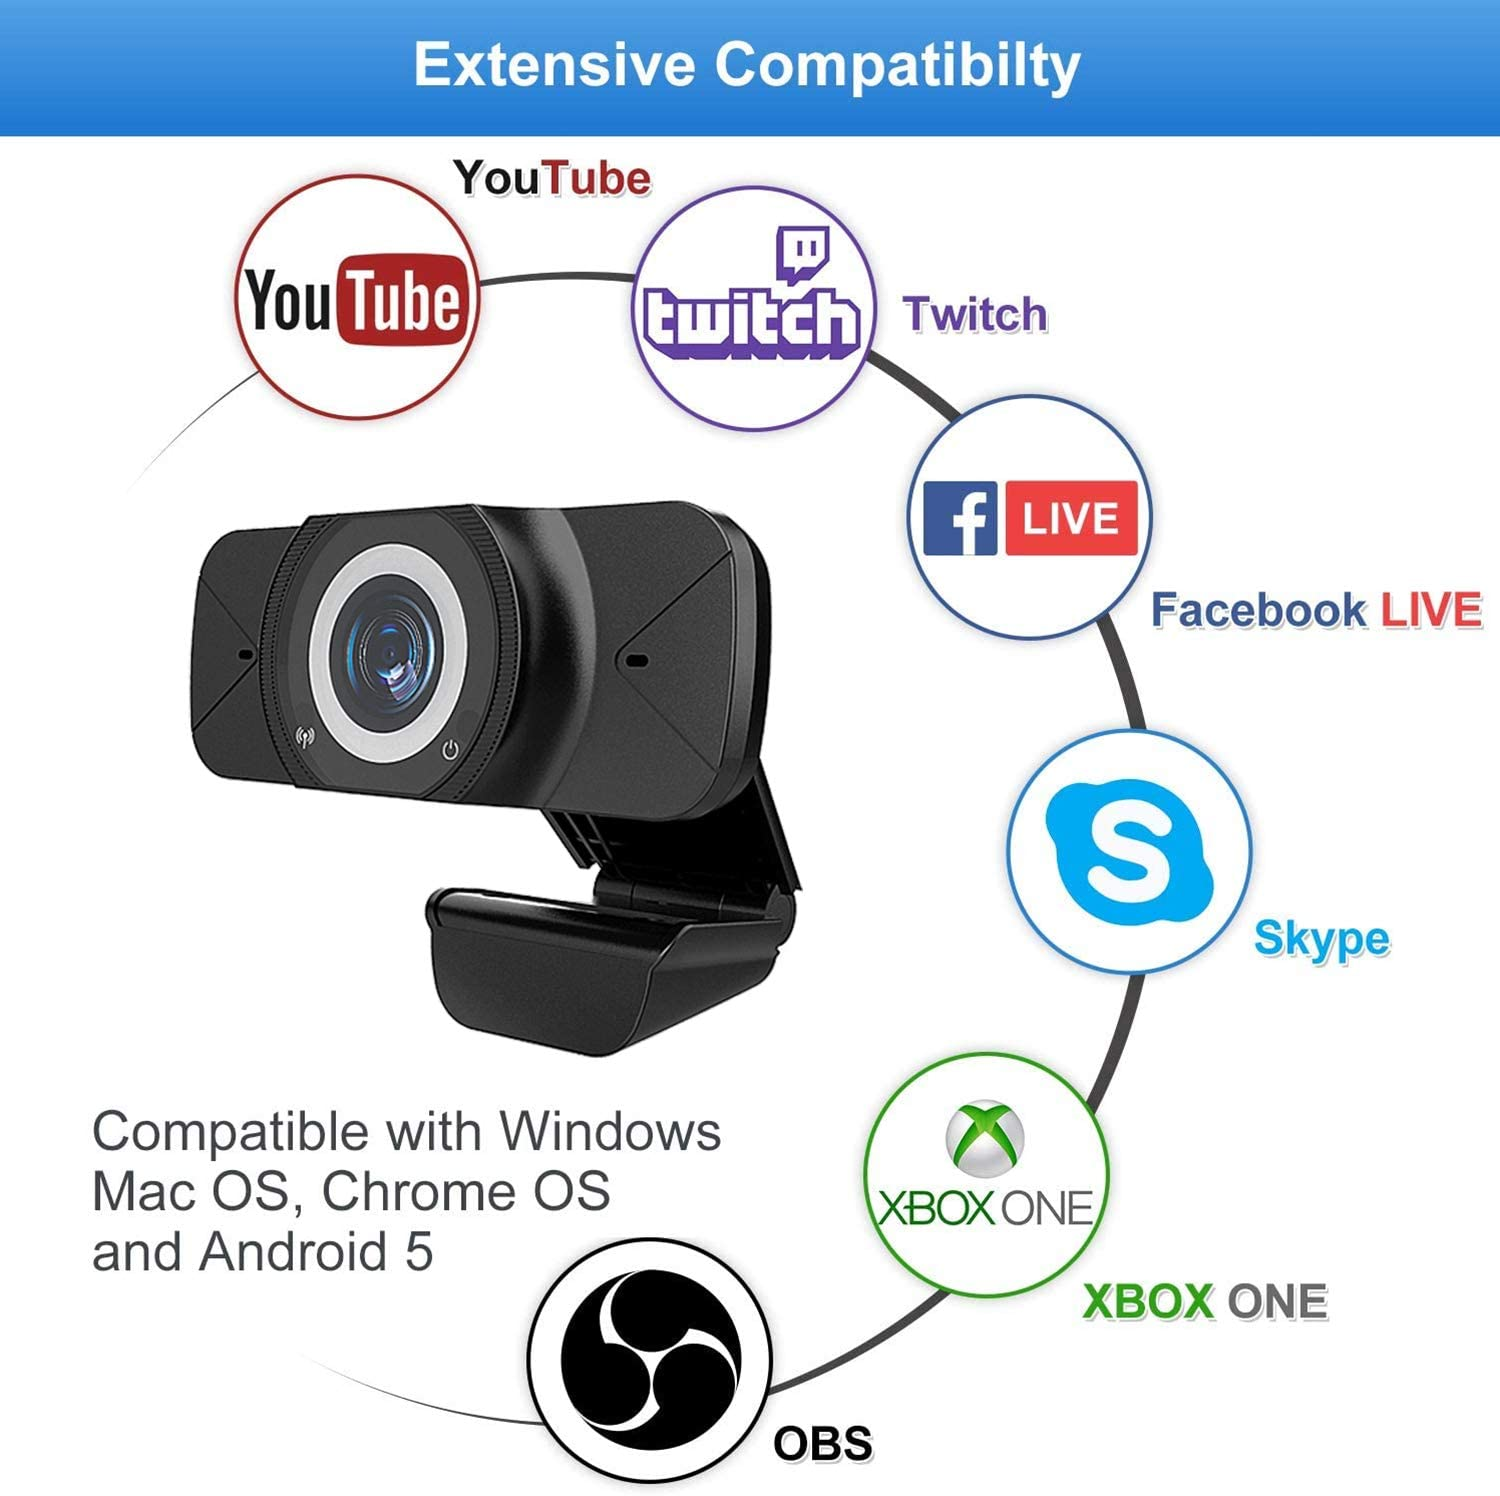 SPADE 1080P Webcam with Microphone Computer HD Streaming Webcam for PC Desktop /& Laptop w//Mic Web Cam USB Camera Wide Angle Lens /& Large Sensor for Superior Low Light